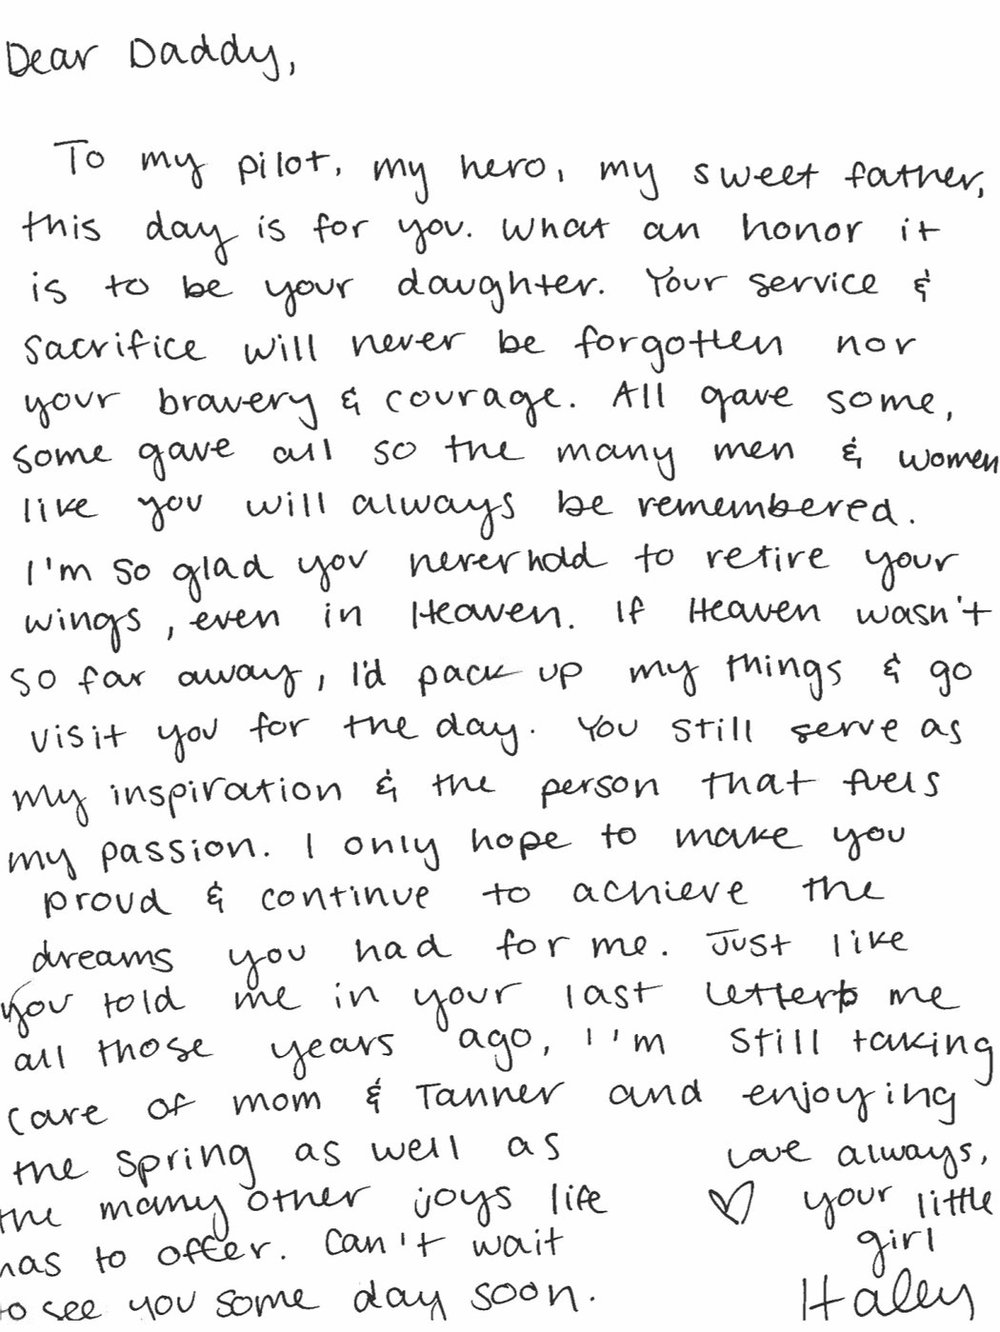 Letter written by Haley Hartwick to her father, who was killed in Iraq in 2006.